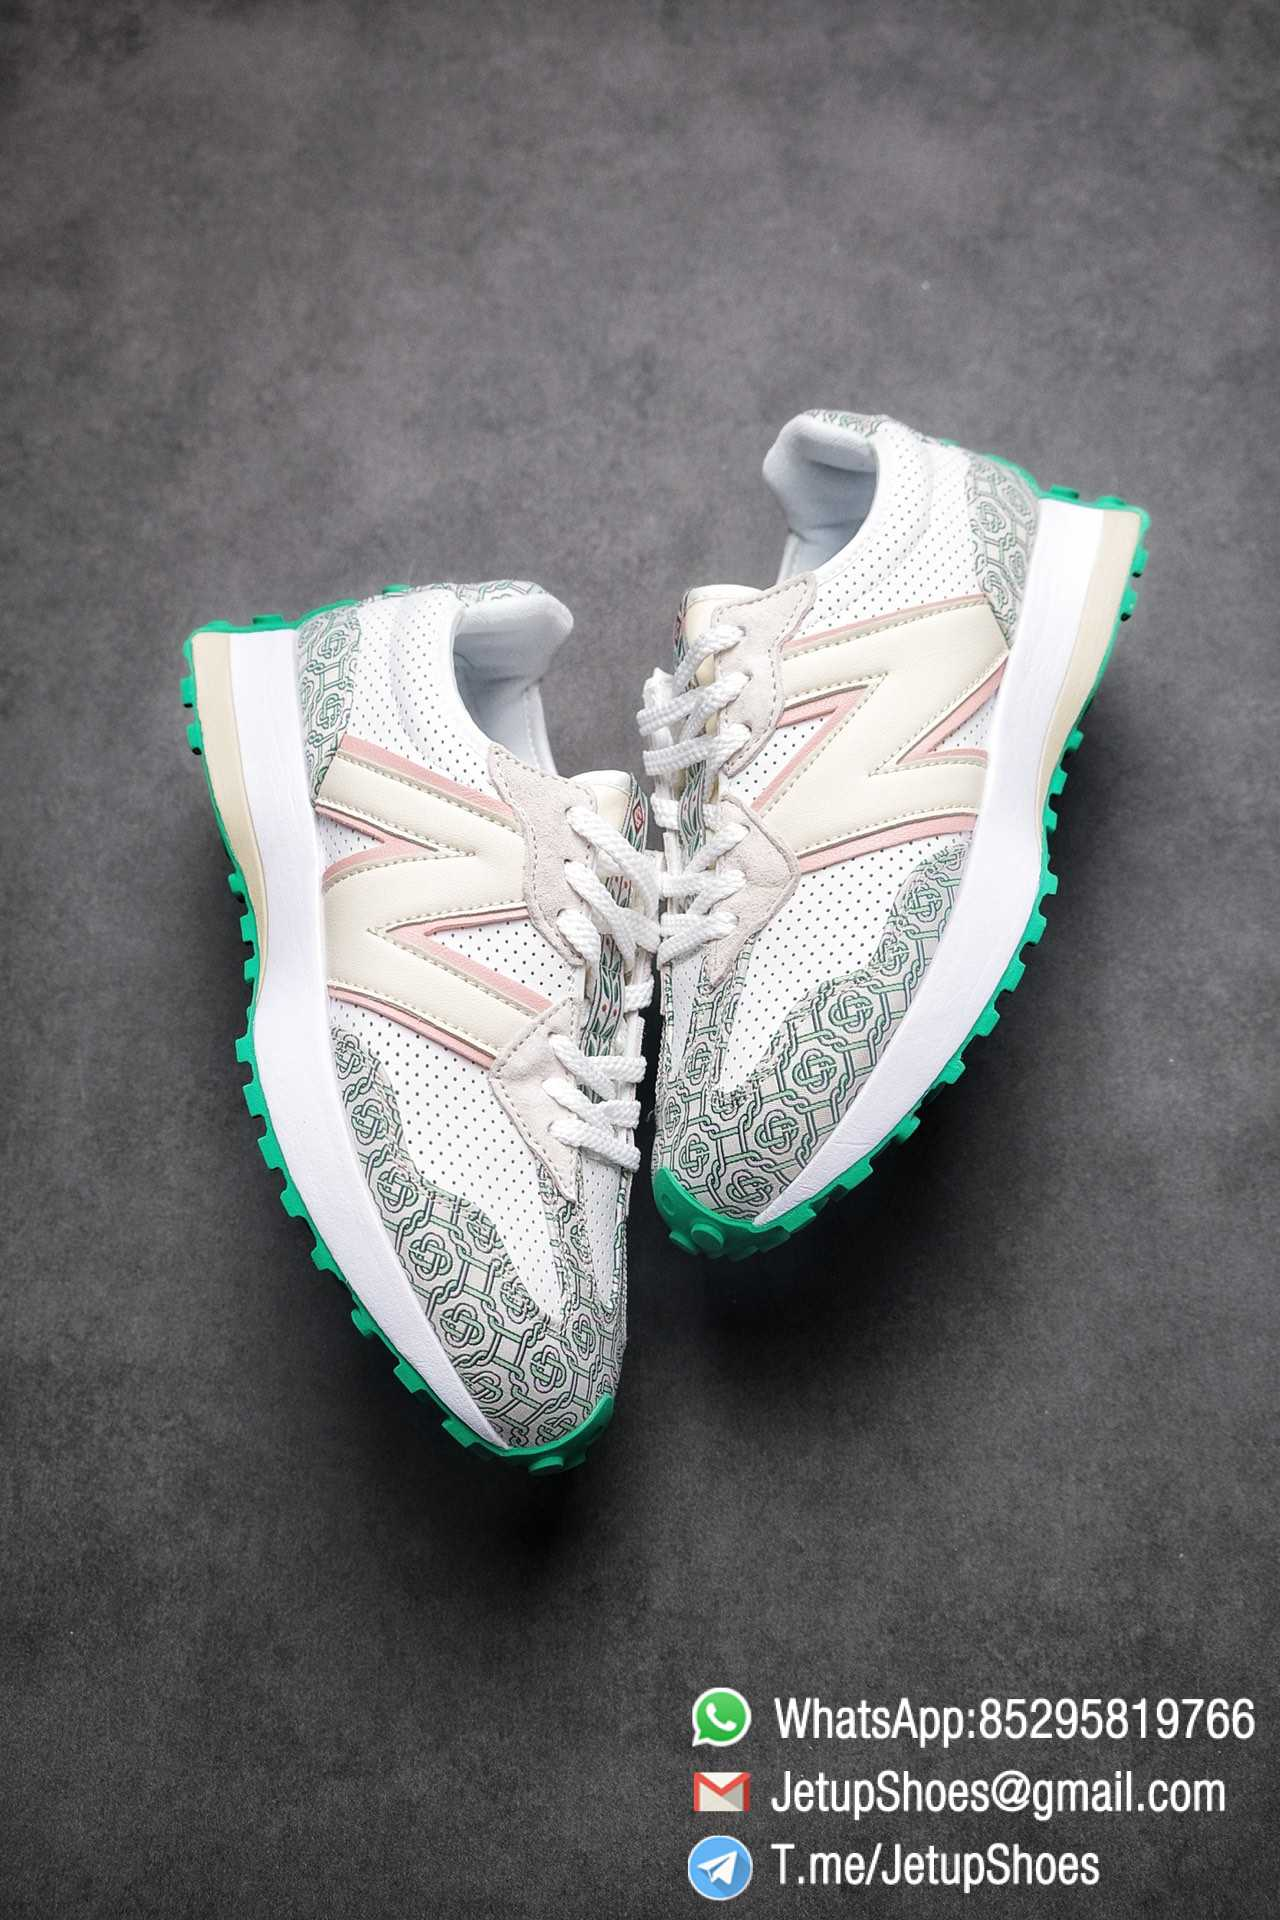 Replica Sneakers New Balance 327 Casablanca x 327 Munsell White Green Retro Running Shoes SKU MS327CAB Best RepSneakers 03